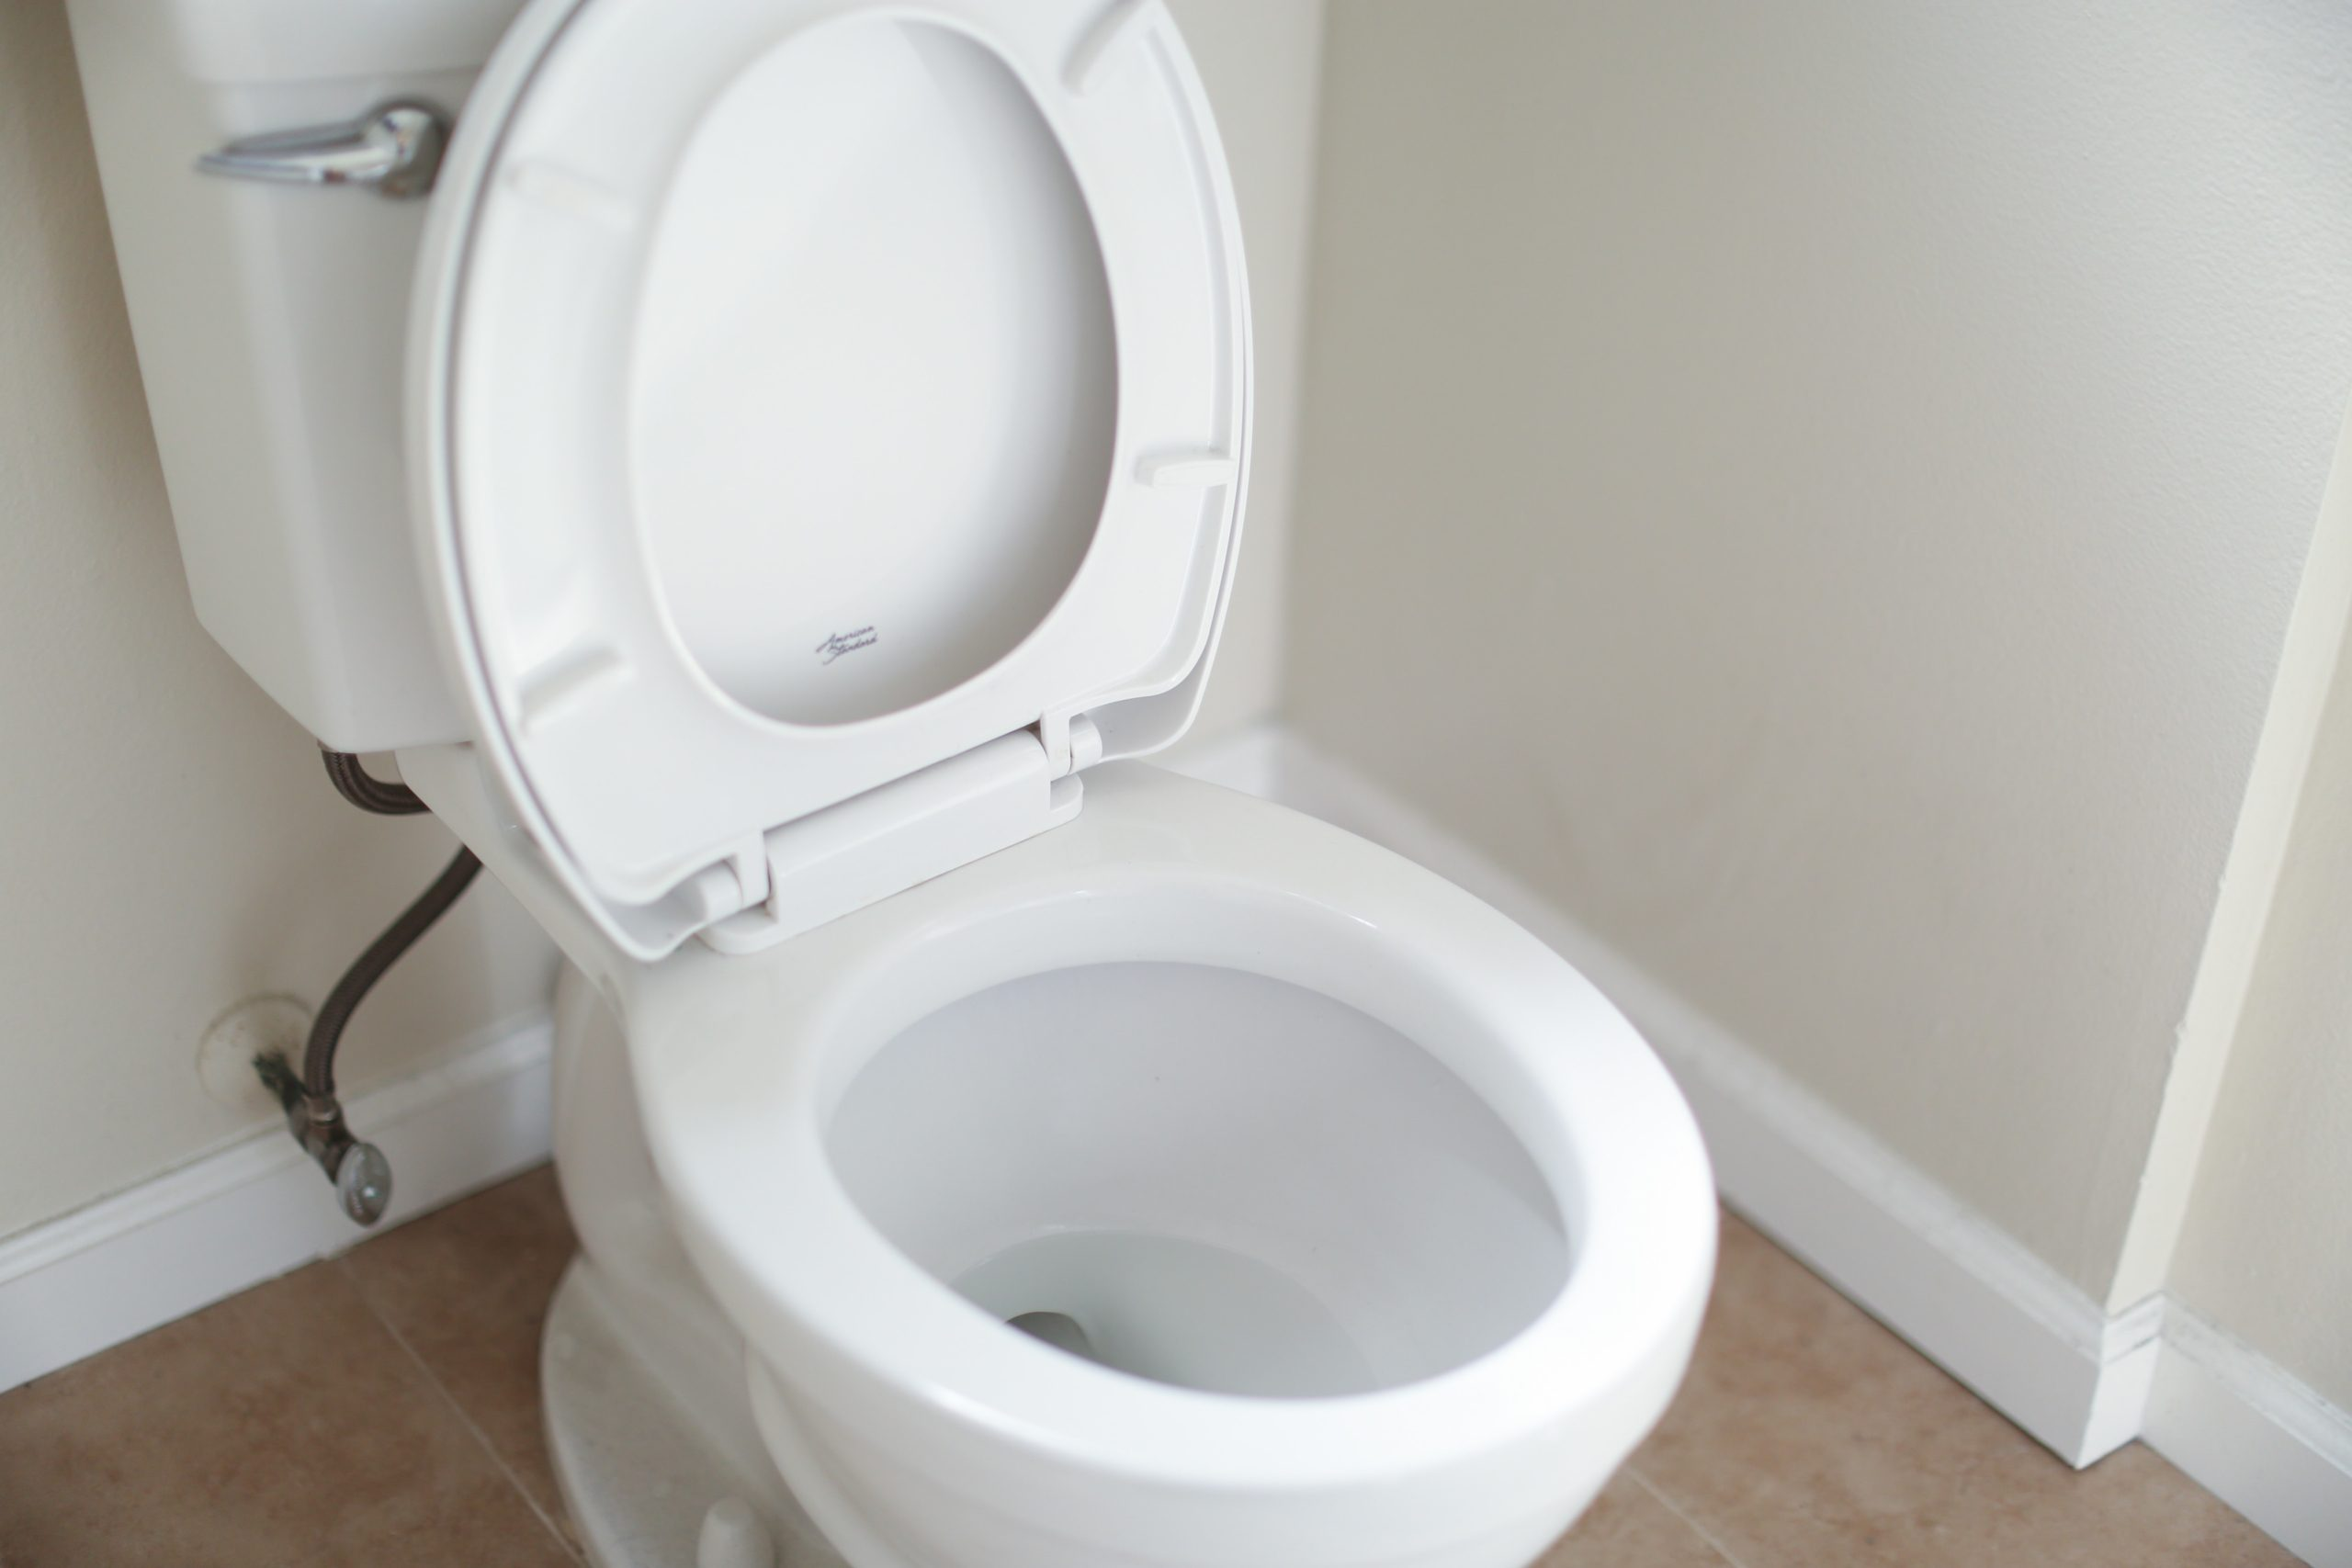 Toilet Repair | Chino Hills, CA